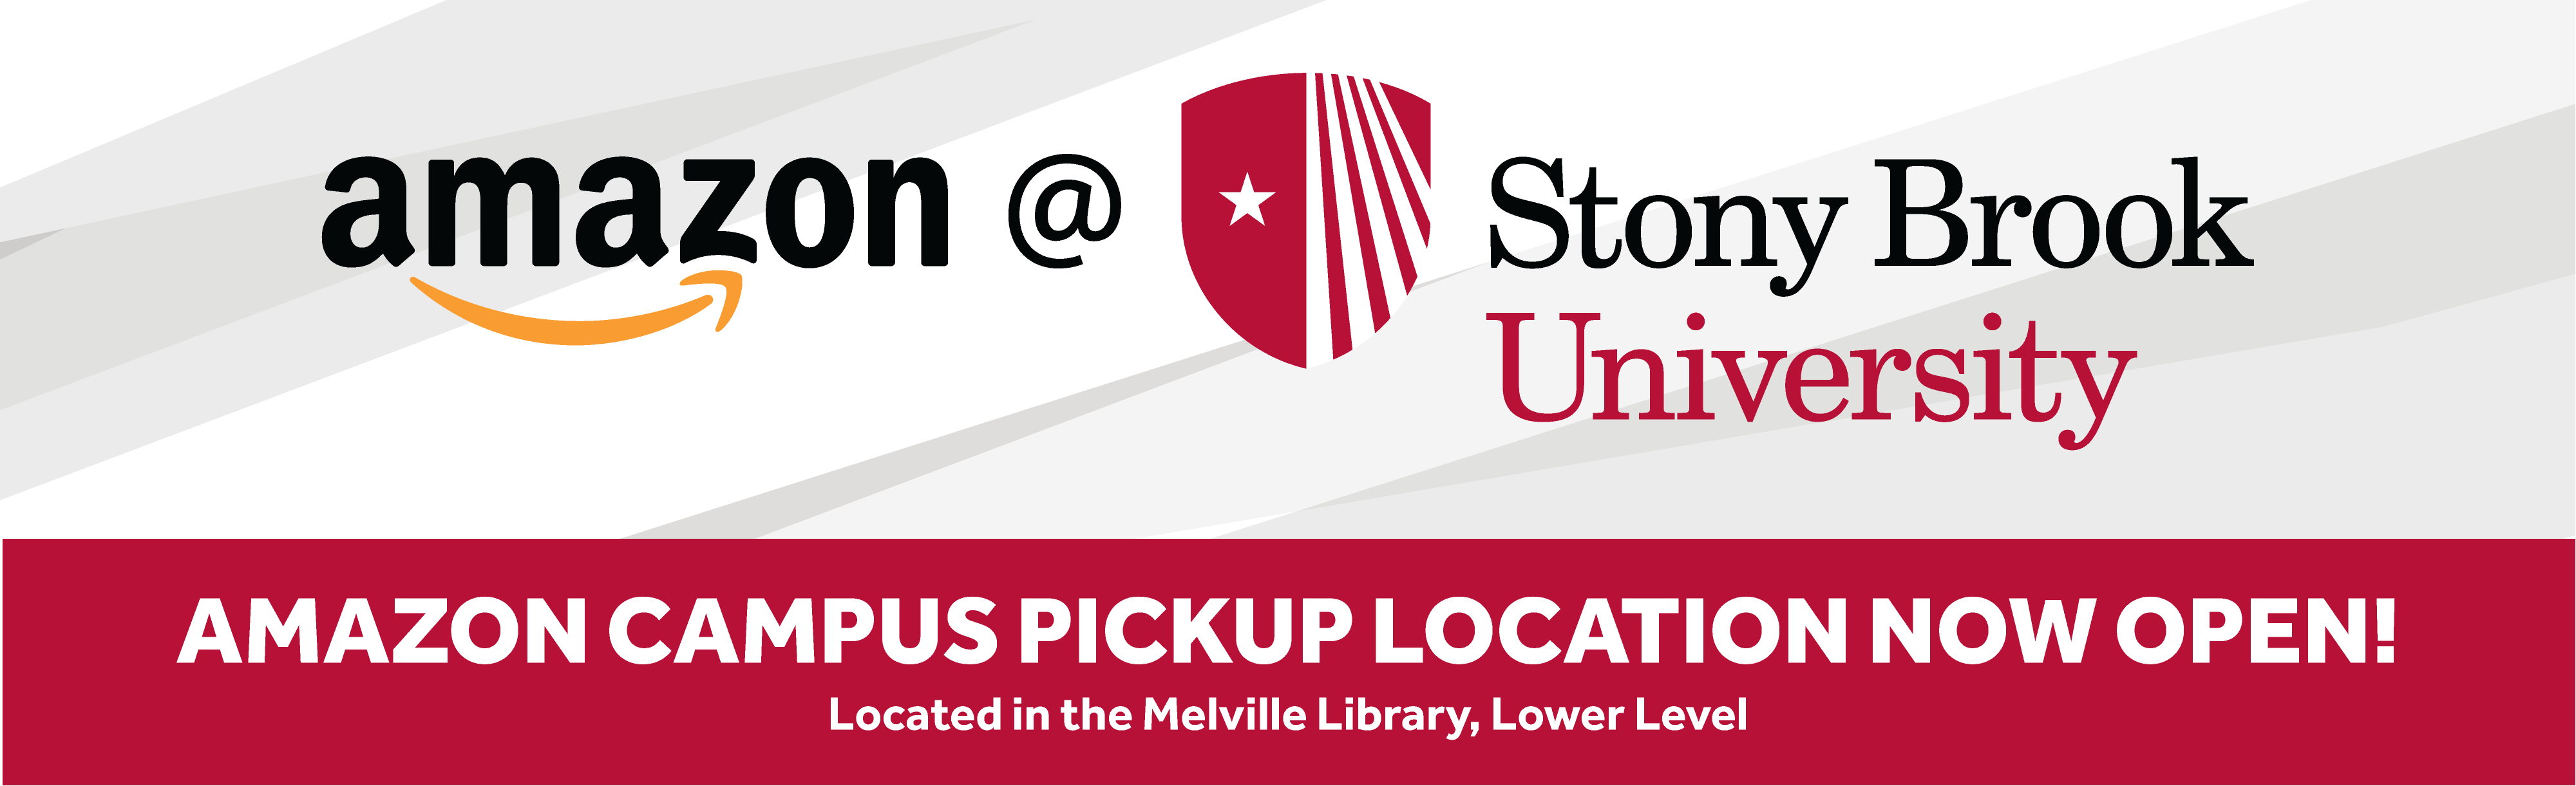 Amazon Campus Pickup Location Now Open! Located in the lower level of the Melville Library